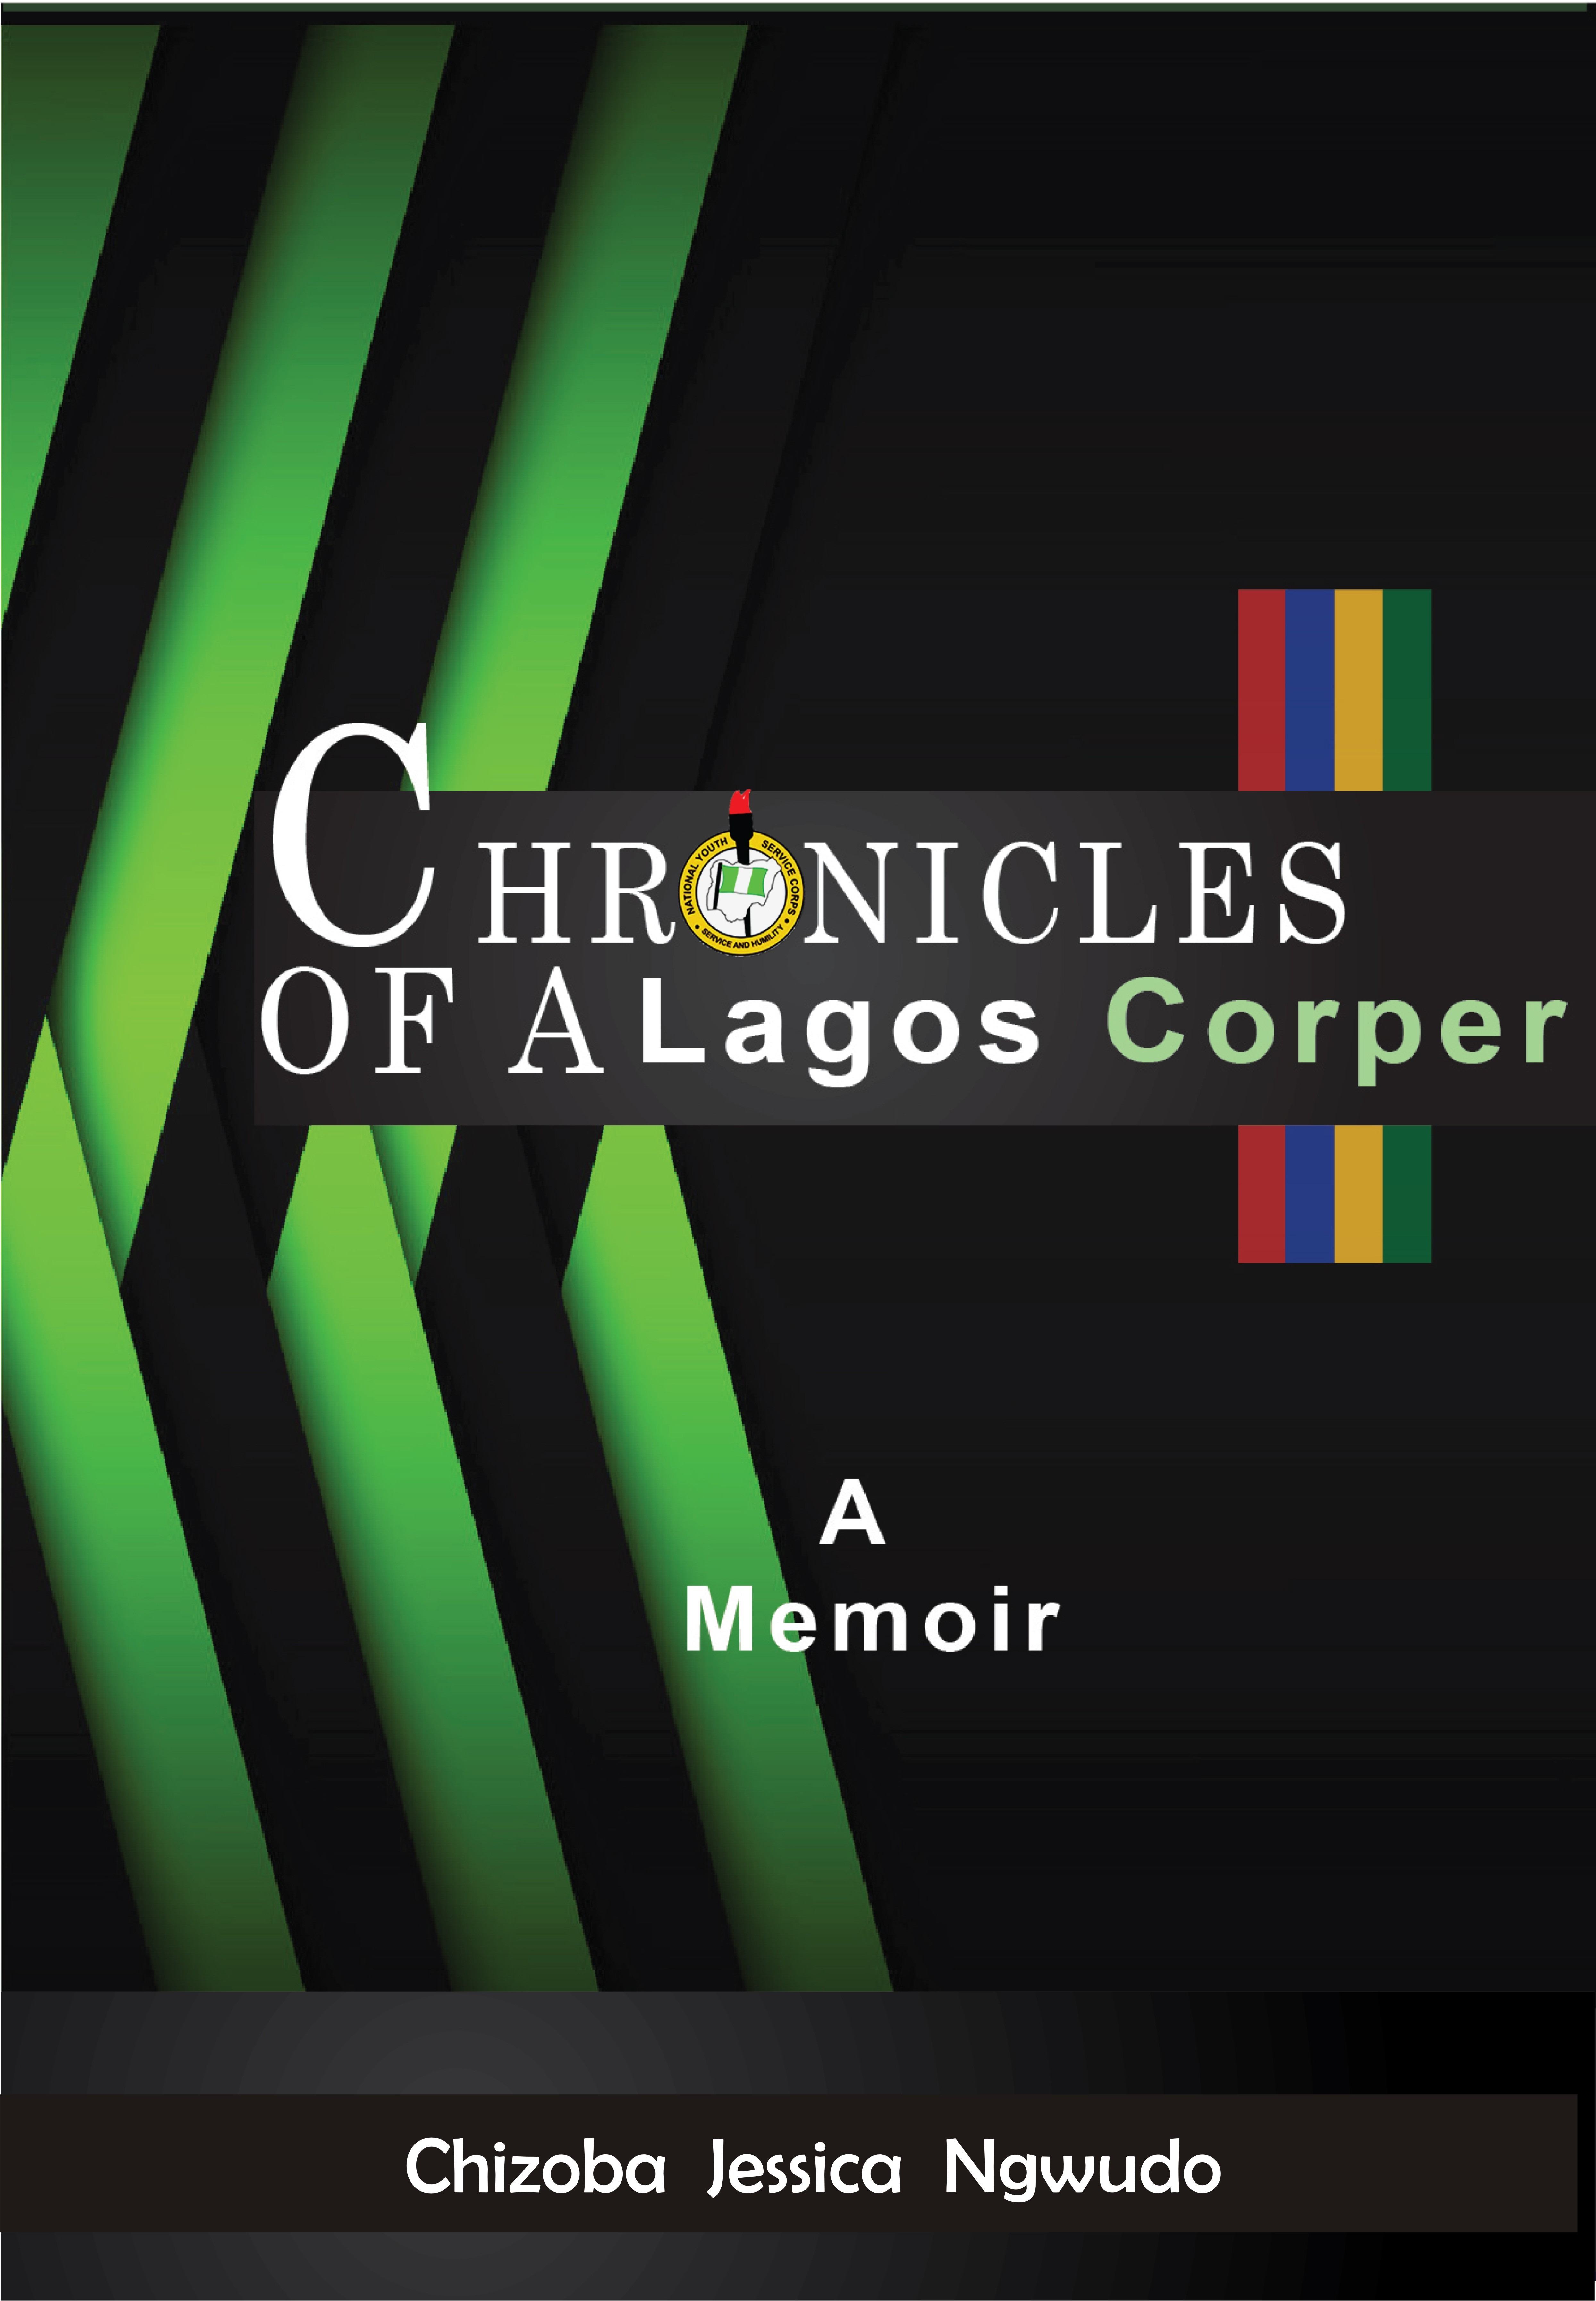 Chronicles of a Lagos Corper